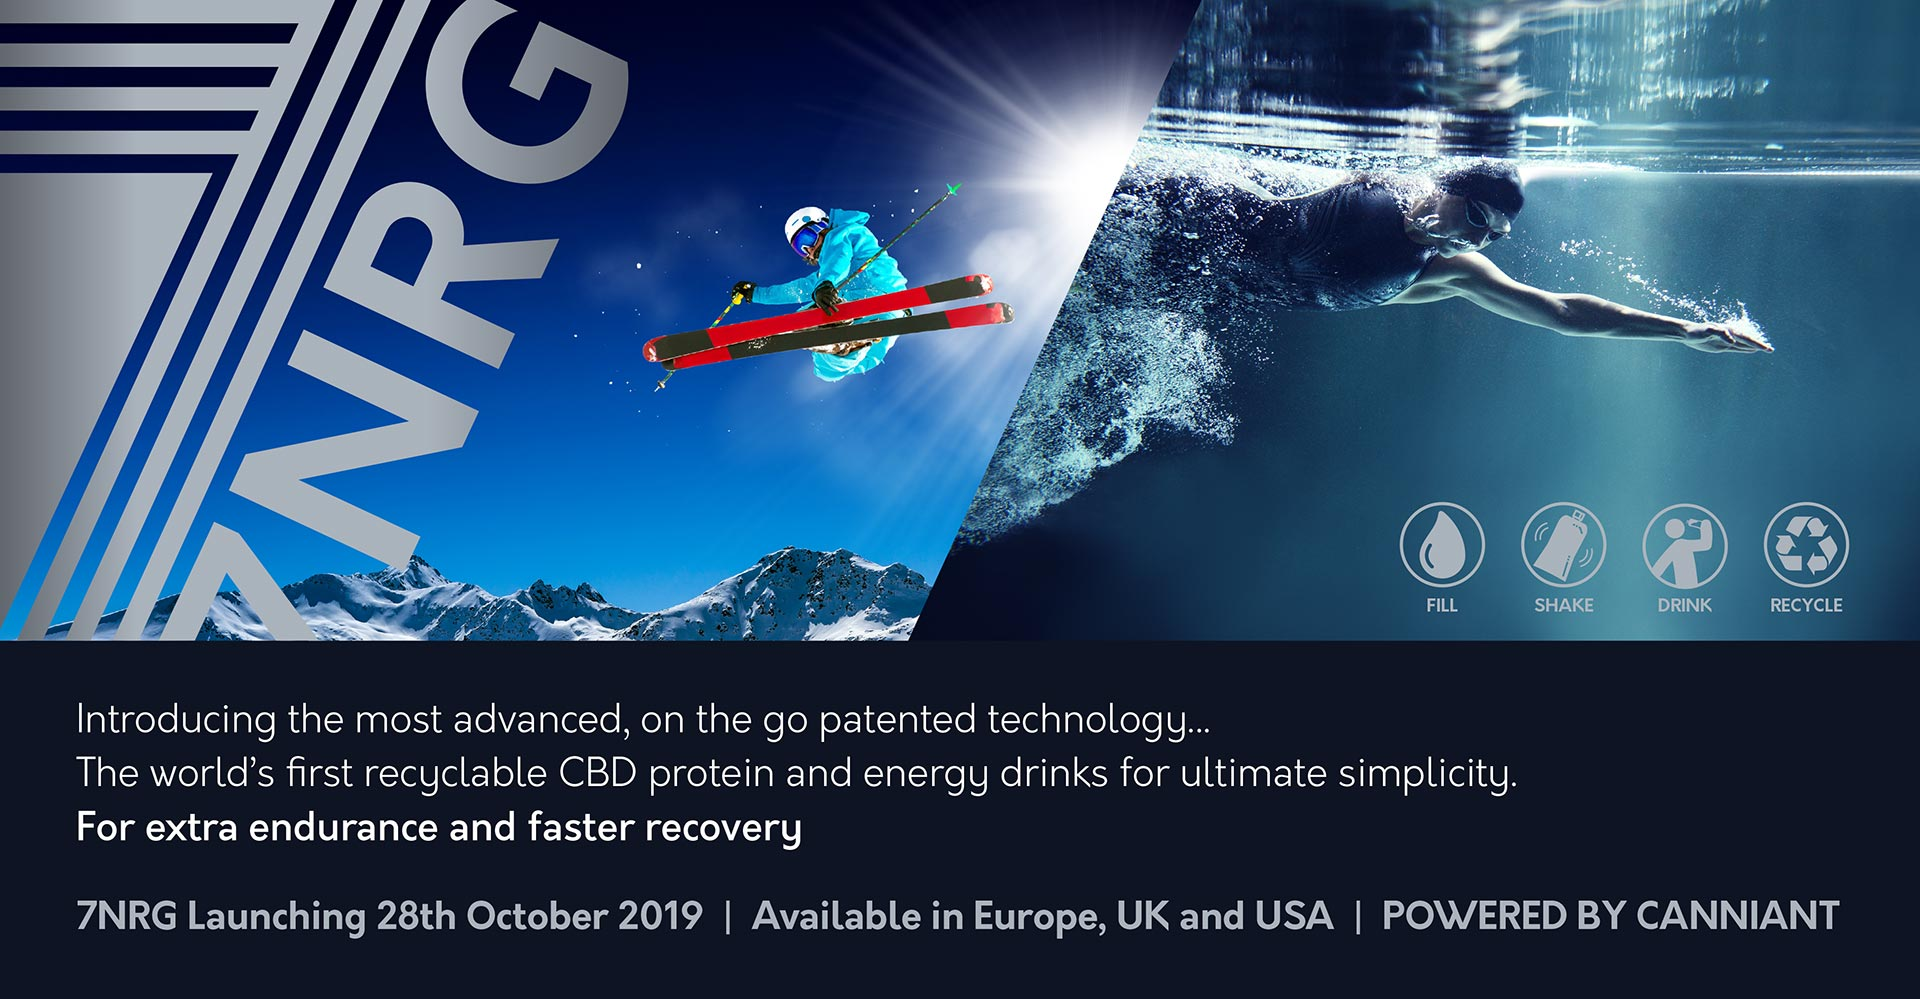 CBD Protein and Energy drinks by 7NRG